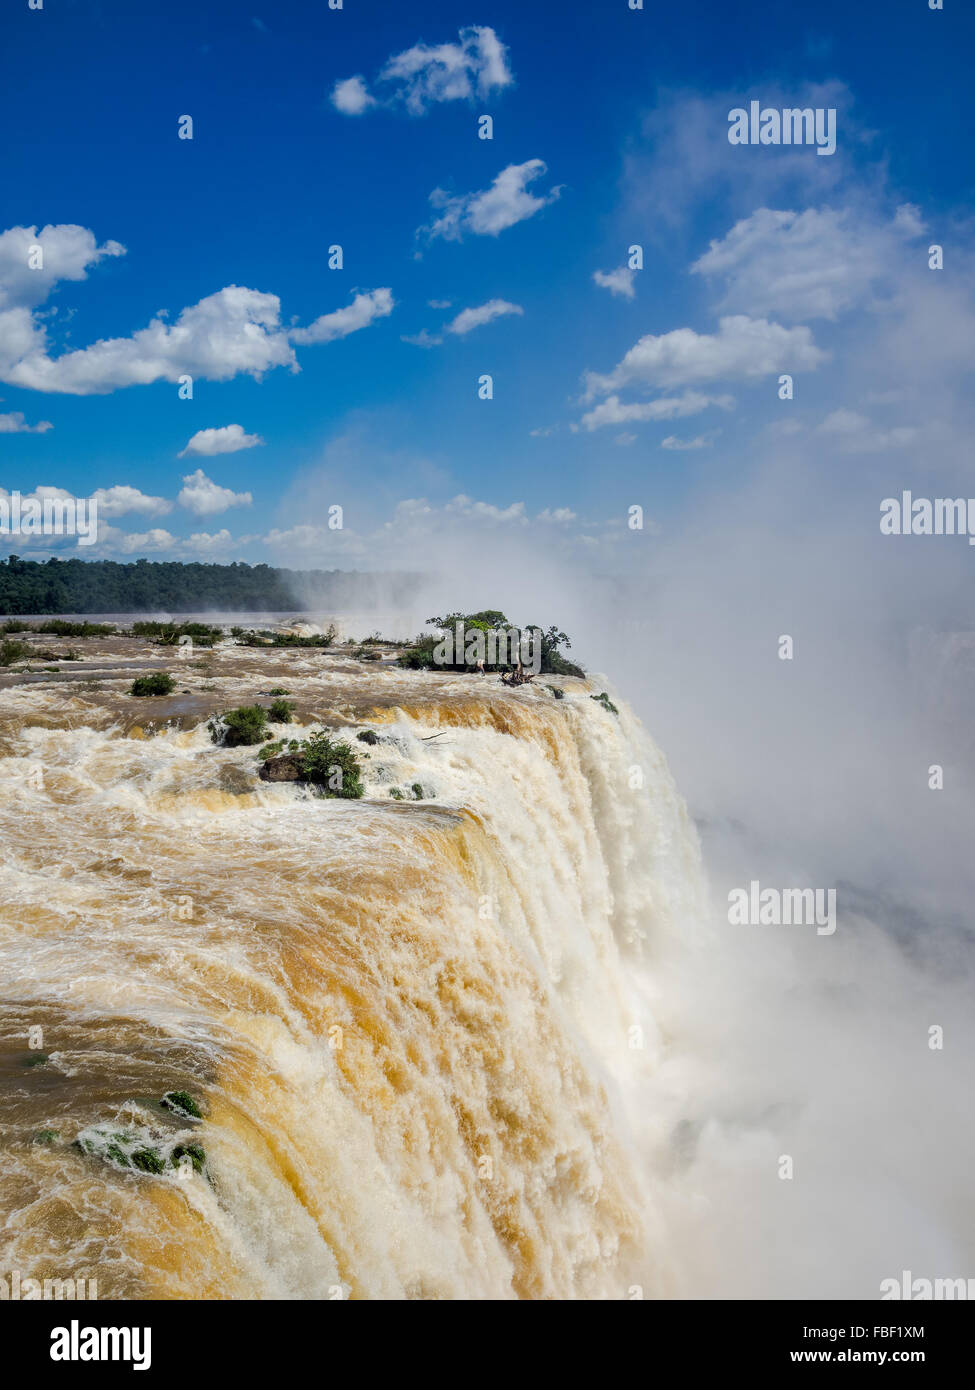 Iguacu Falls, on the border of Argentina and Brazil. - Stock Image